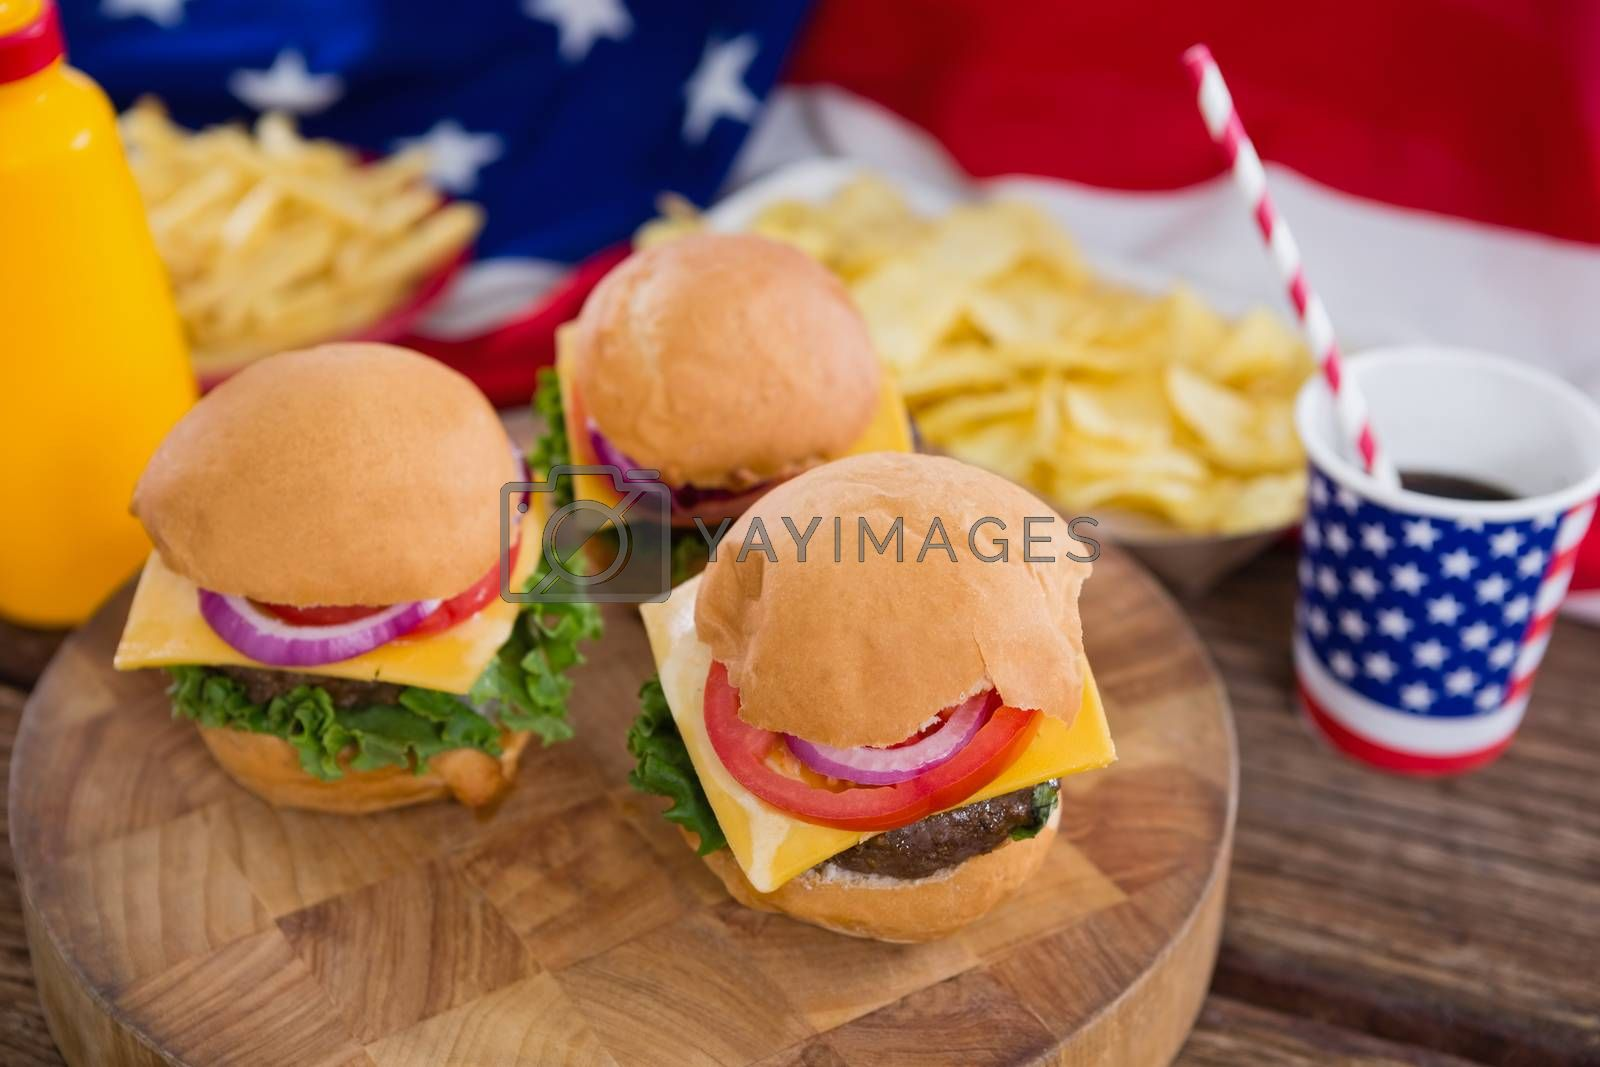 Close-up of burgers on wooden table with 4th july theme